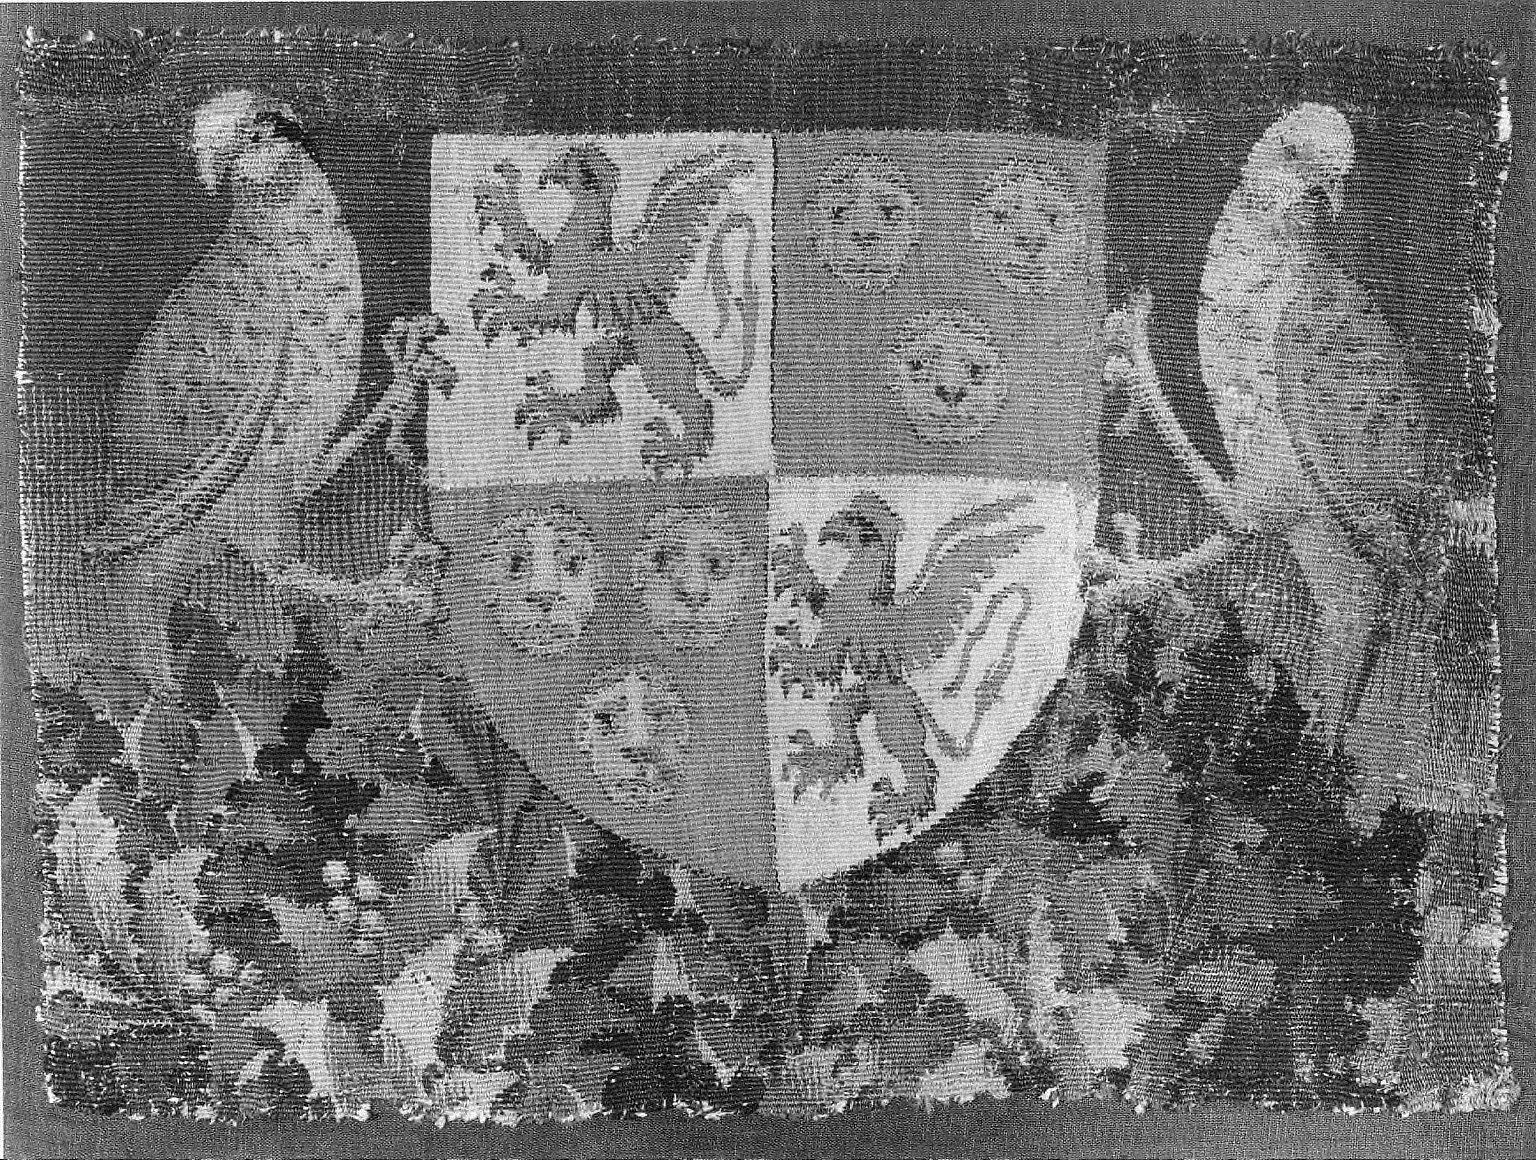 Armorial Shield C, fragment from THE STORY OF PENELOPE AND THE STORY OF